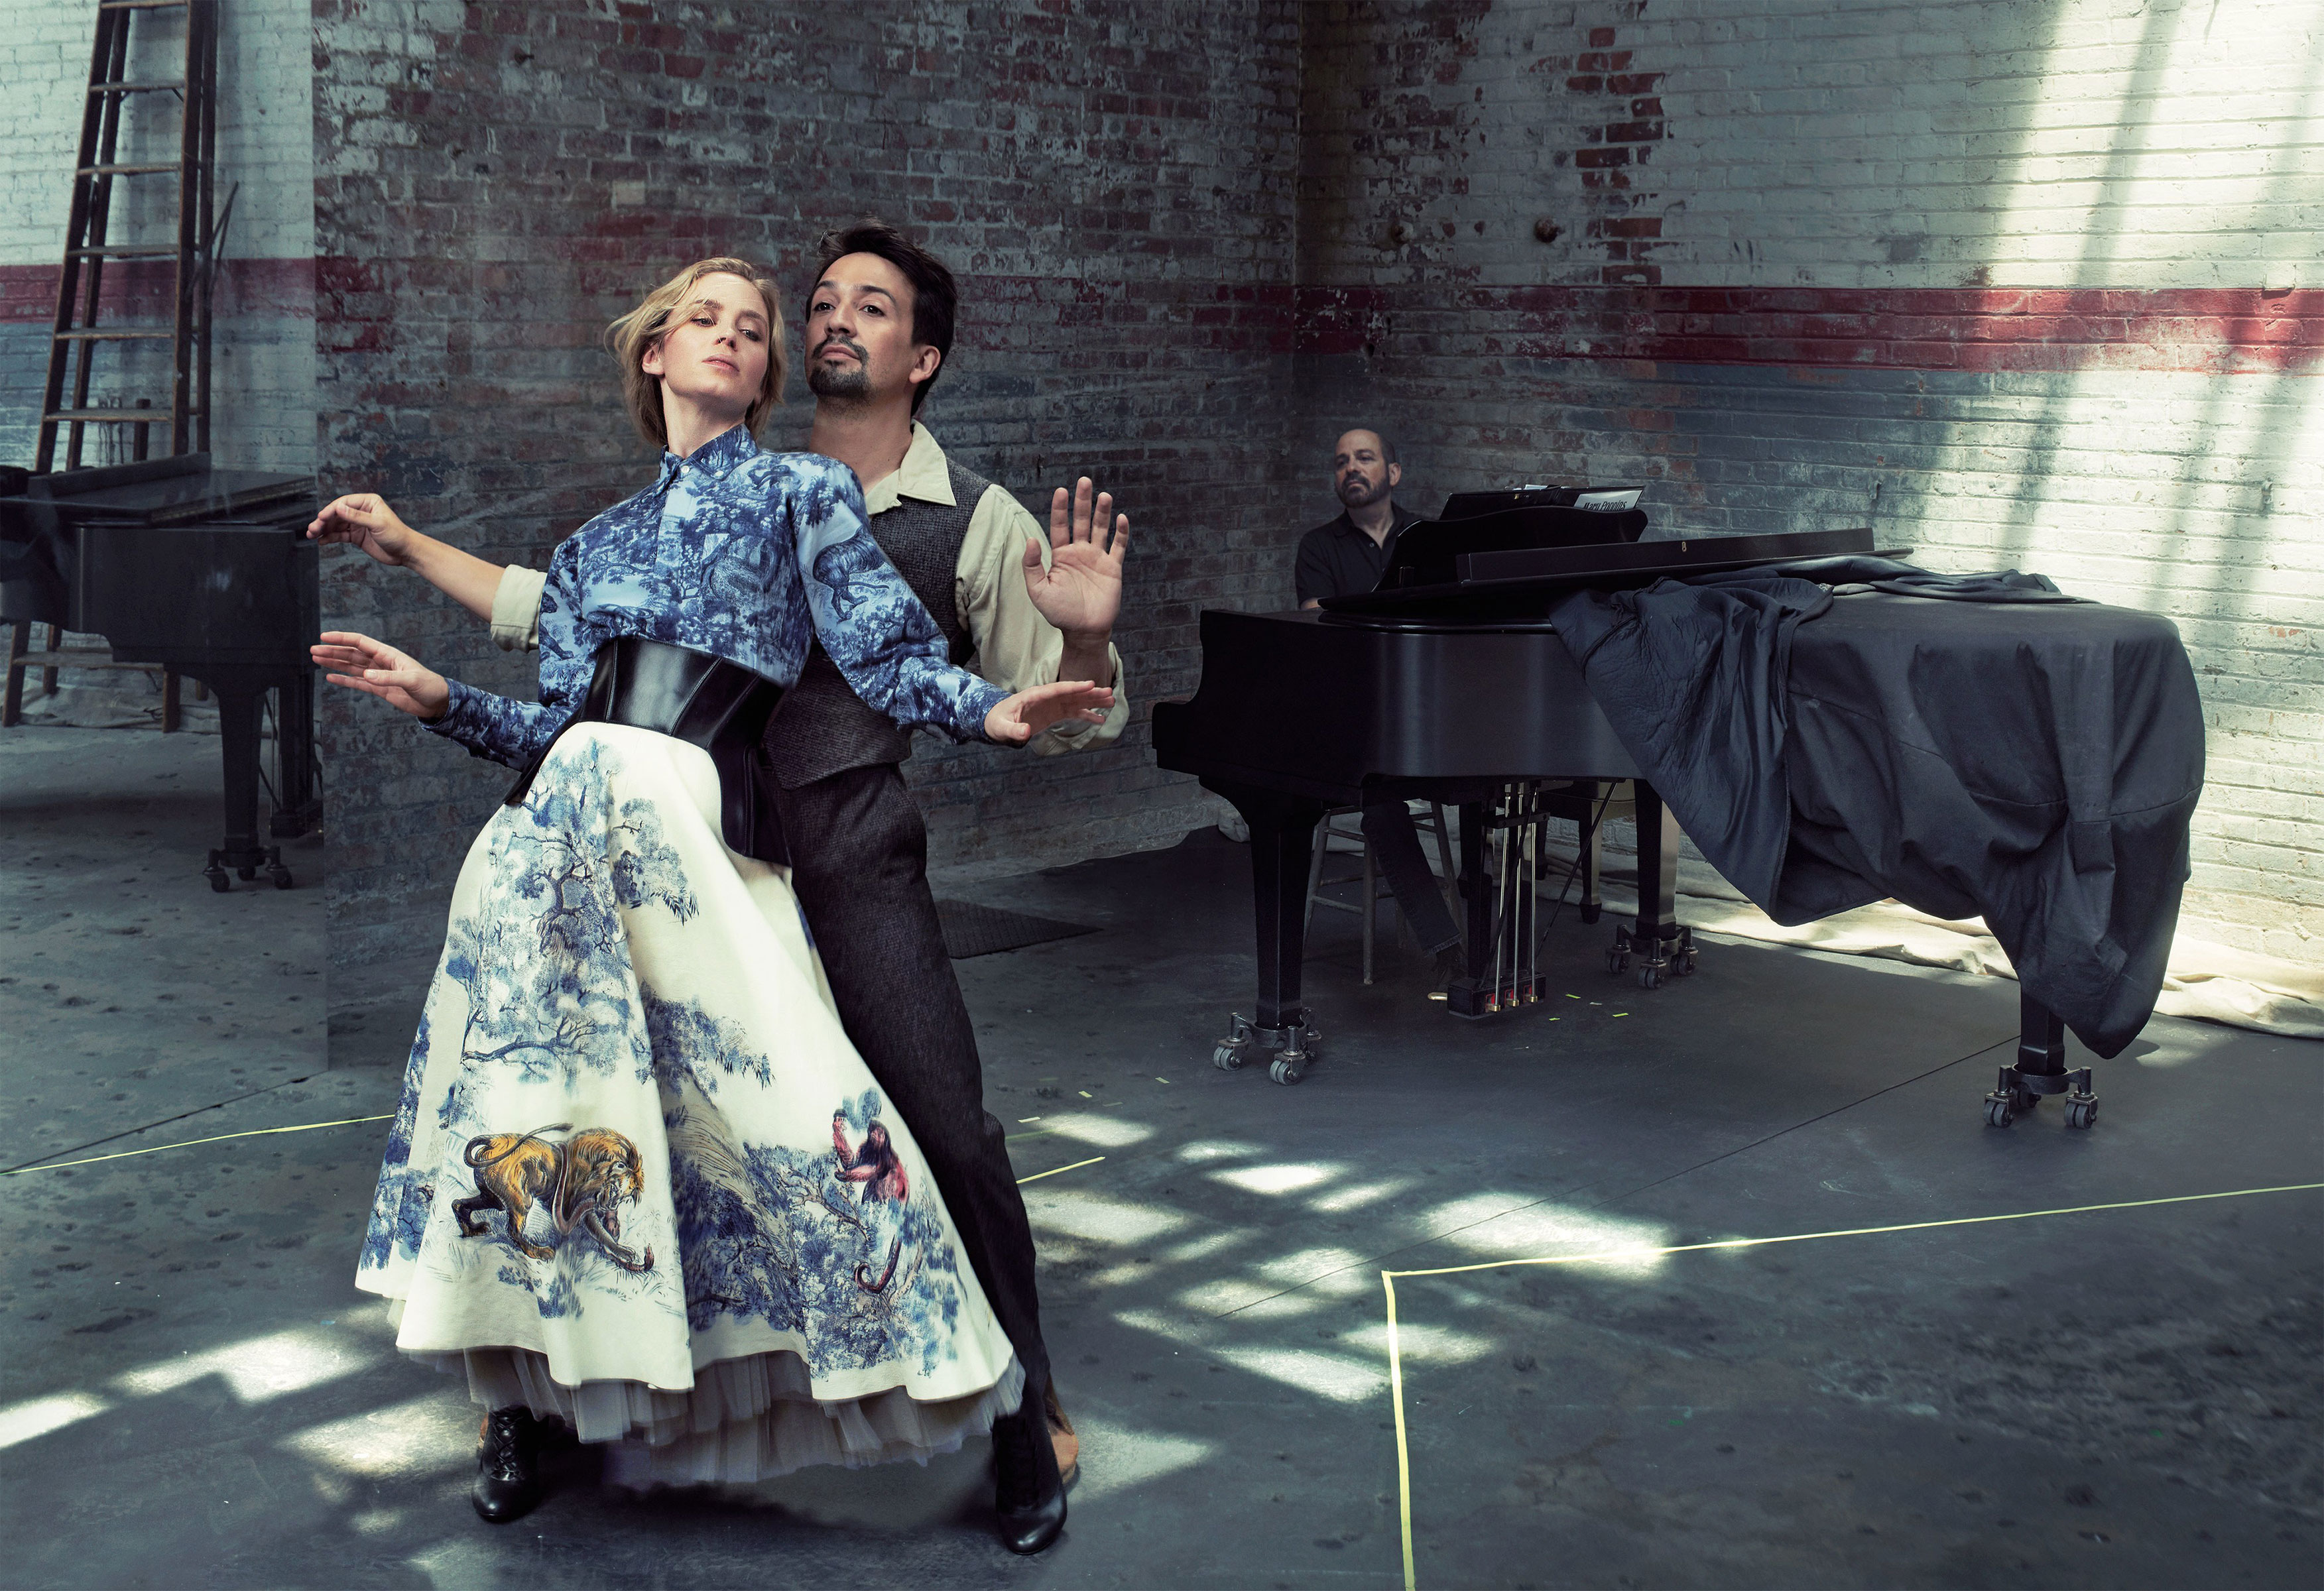 Vogue_December_2018_Mary_Poppins_Emily_Blunt_Lin_Manuel_Miranda_piano_web